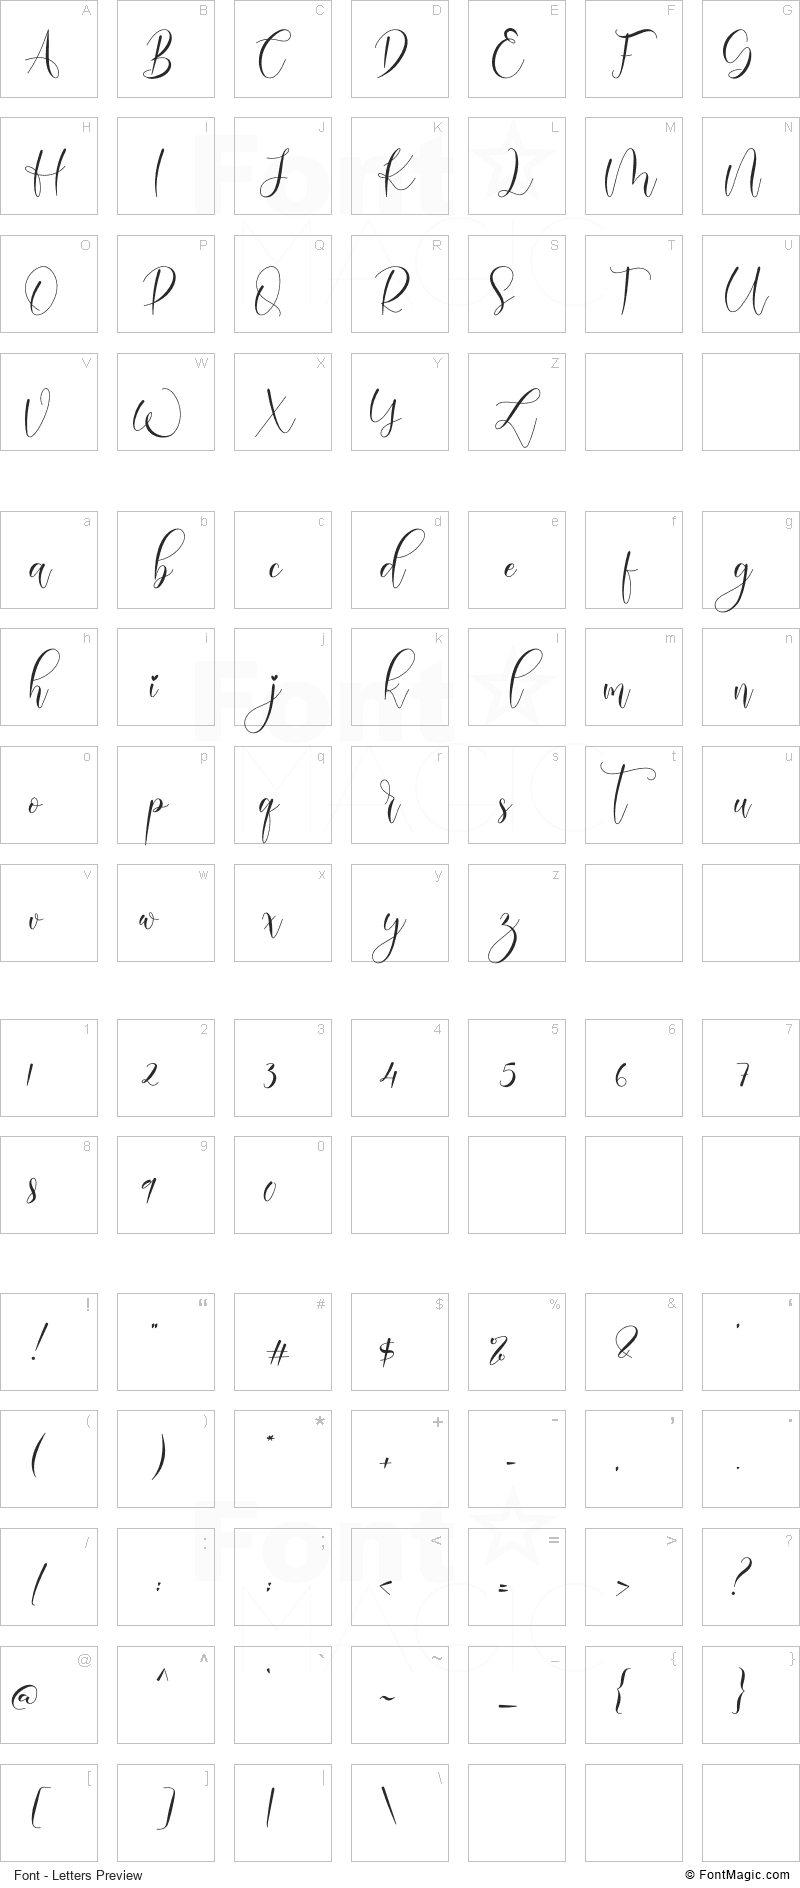 Madalina Font - All Latters Preview Chart